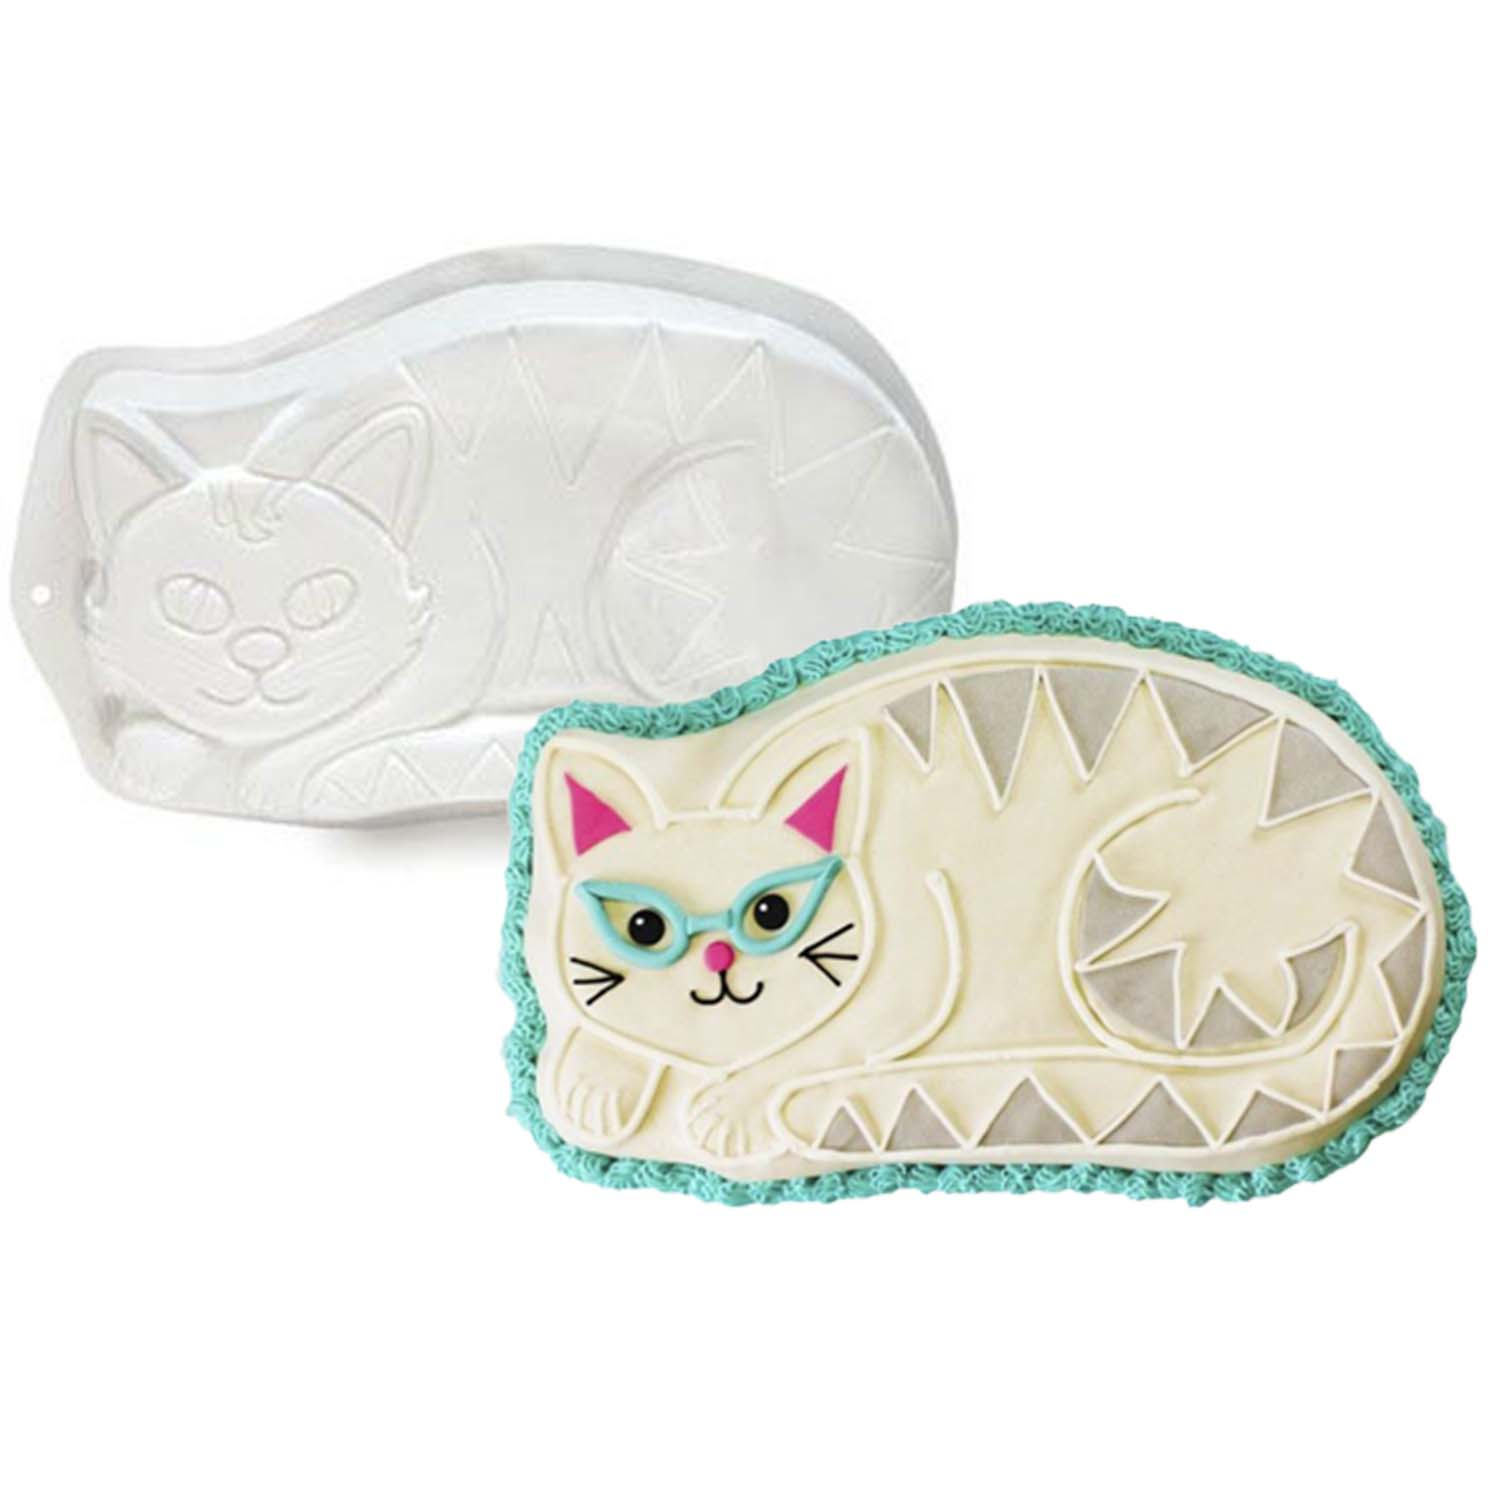 Cat Pantastic Plastic Cake Pan